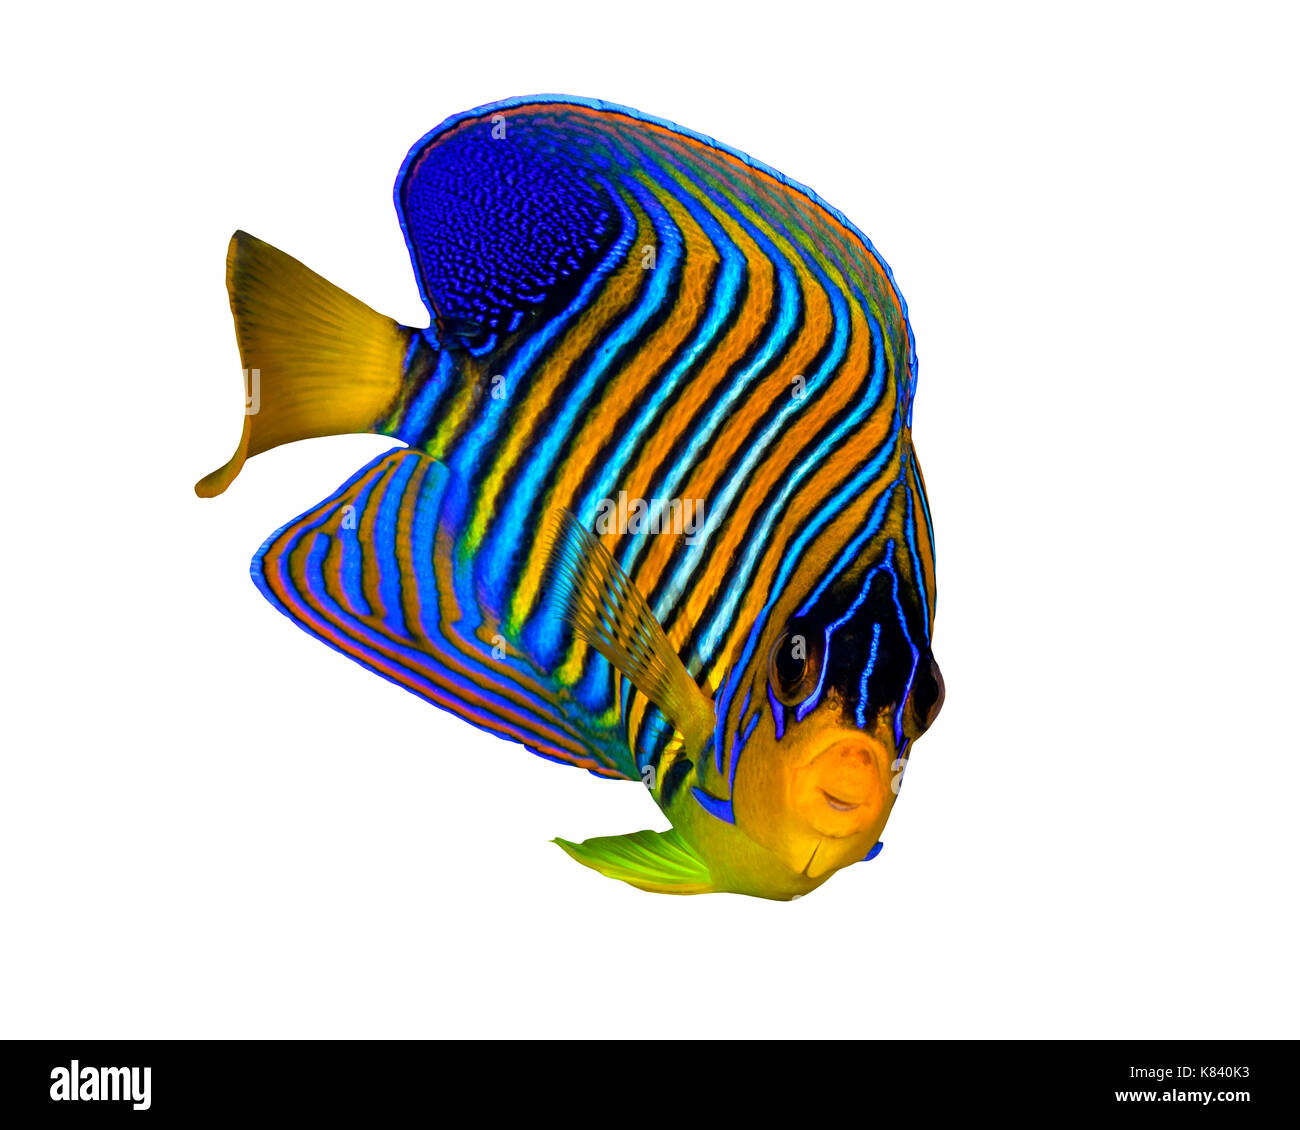 Regal Angelfish on white background - Stock Image